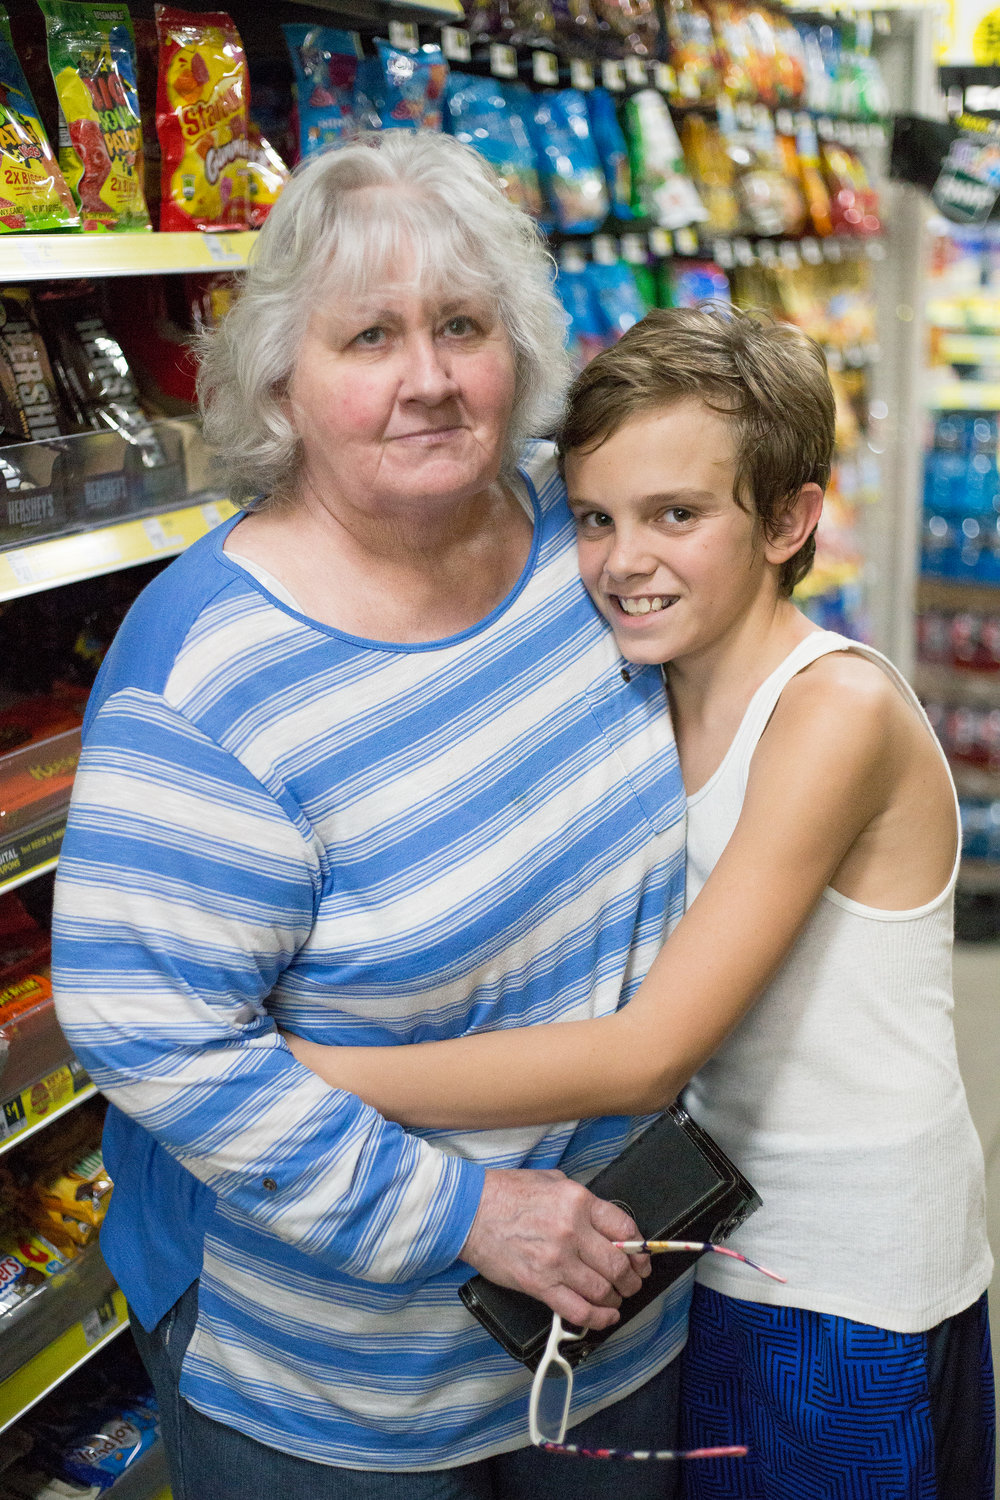 Margie Bunch, left, and her grandson Jayden Wilson, 12, both of Dayton, Tenn. pose for a portrait during a shopping trip at Dollar General in Evensville, Tenn. Thursday, Nov. 16 2017. Bunch said she has been raising Wilson ever since her daughter passed away three years ago.